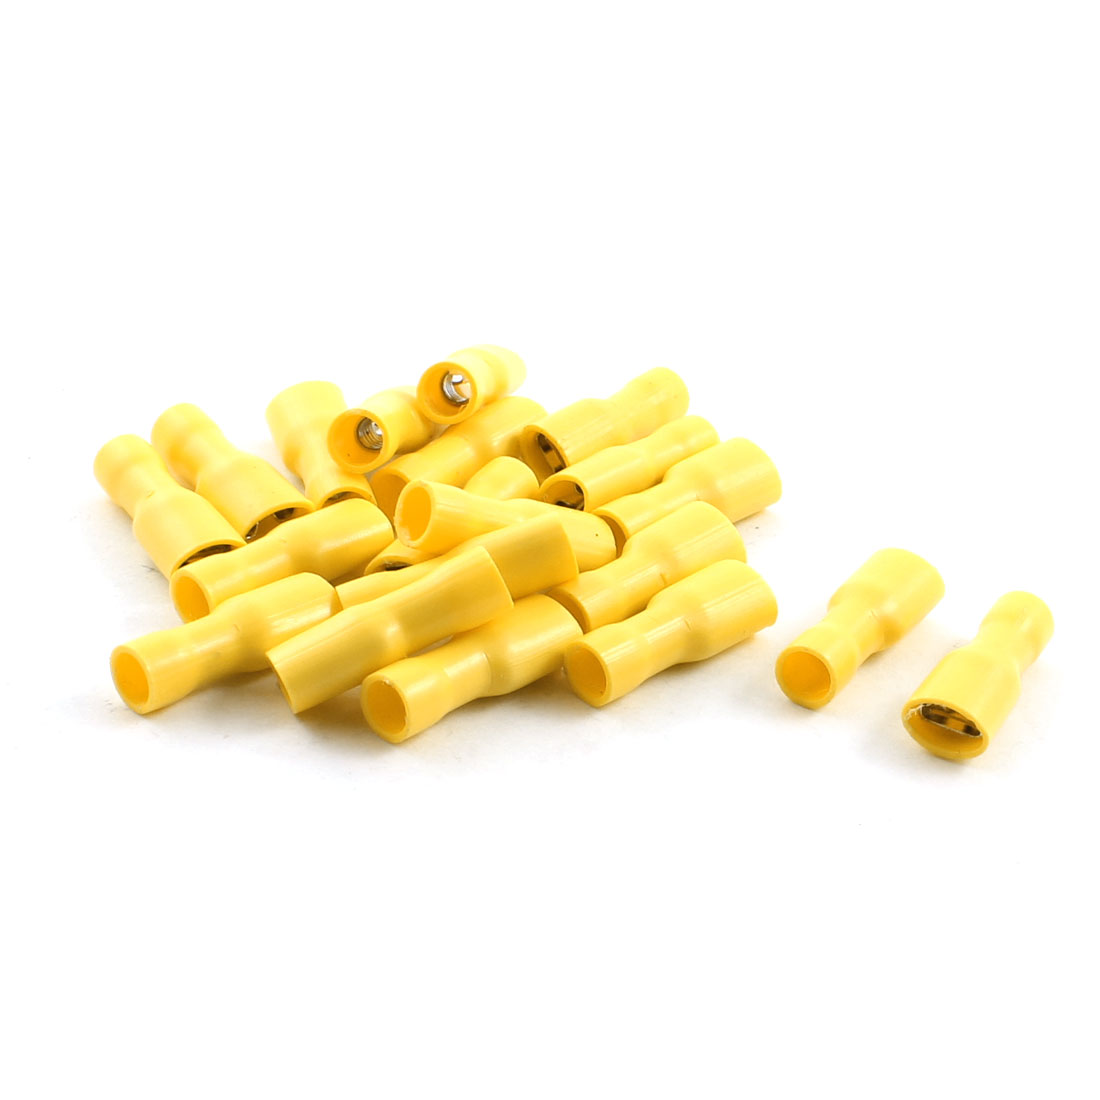 20Pcs Yellow Female Fully Insulated Spade Crimp Terminals for AWG 12-10 Cable